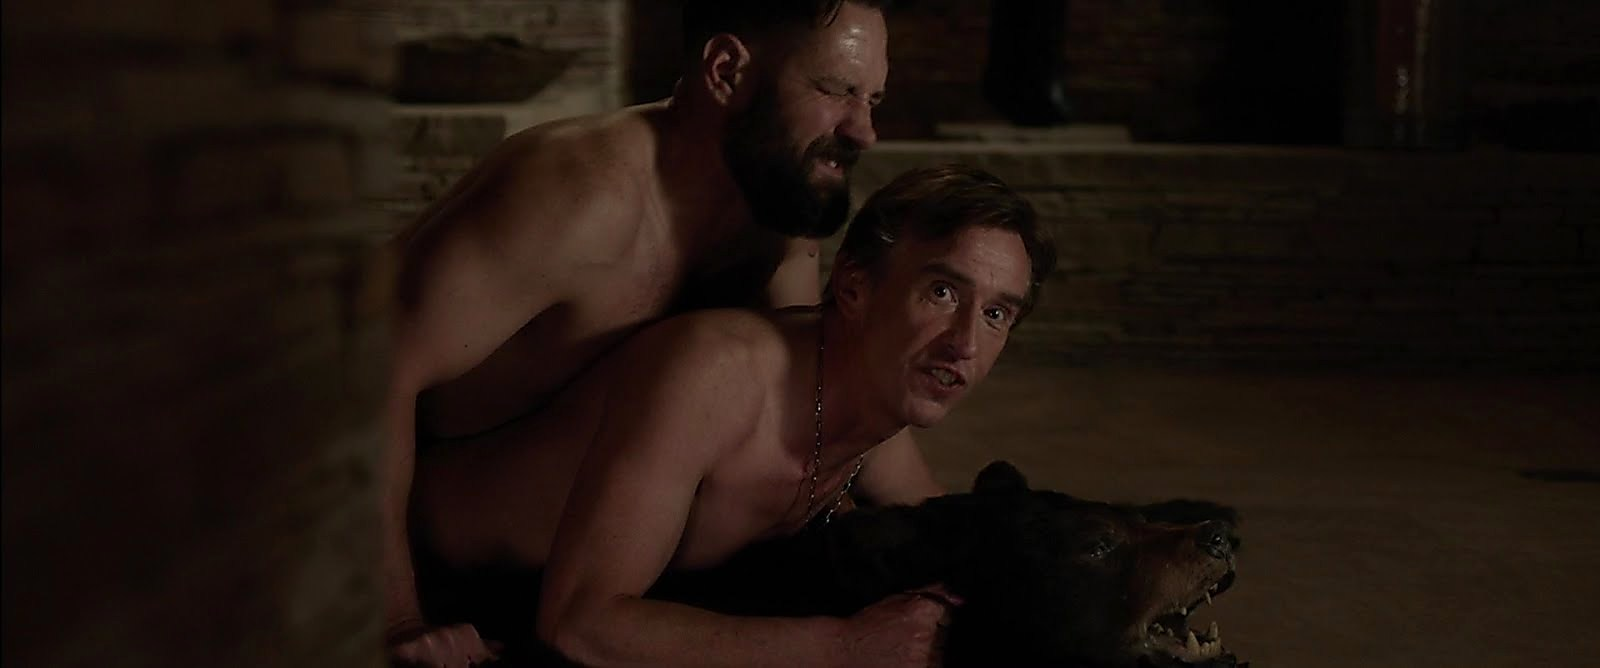 Paul Rudd sexy shirtless scene July 1, 2018, 12pm